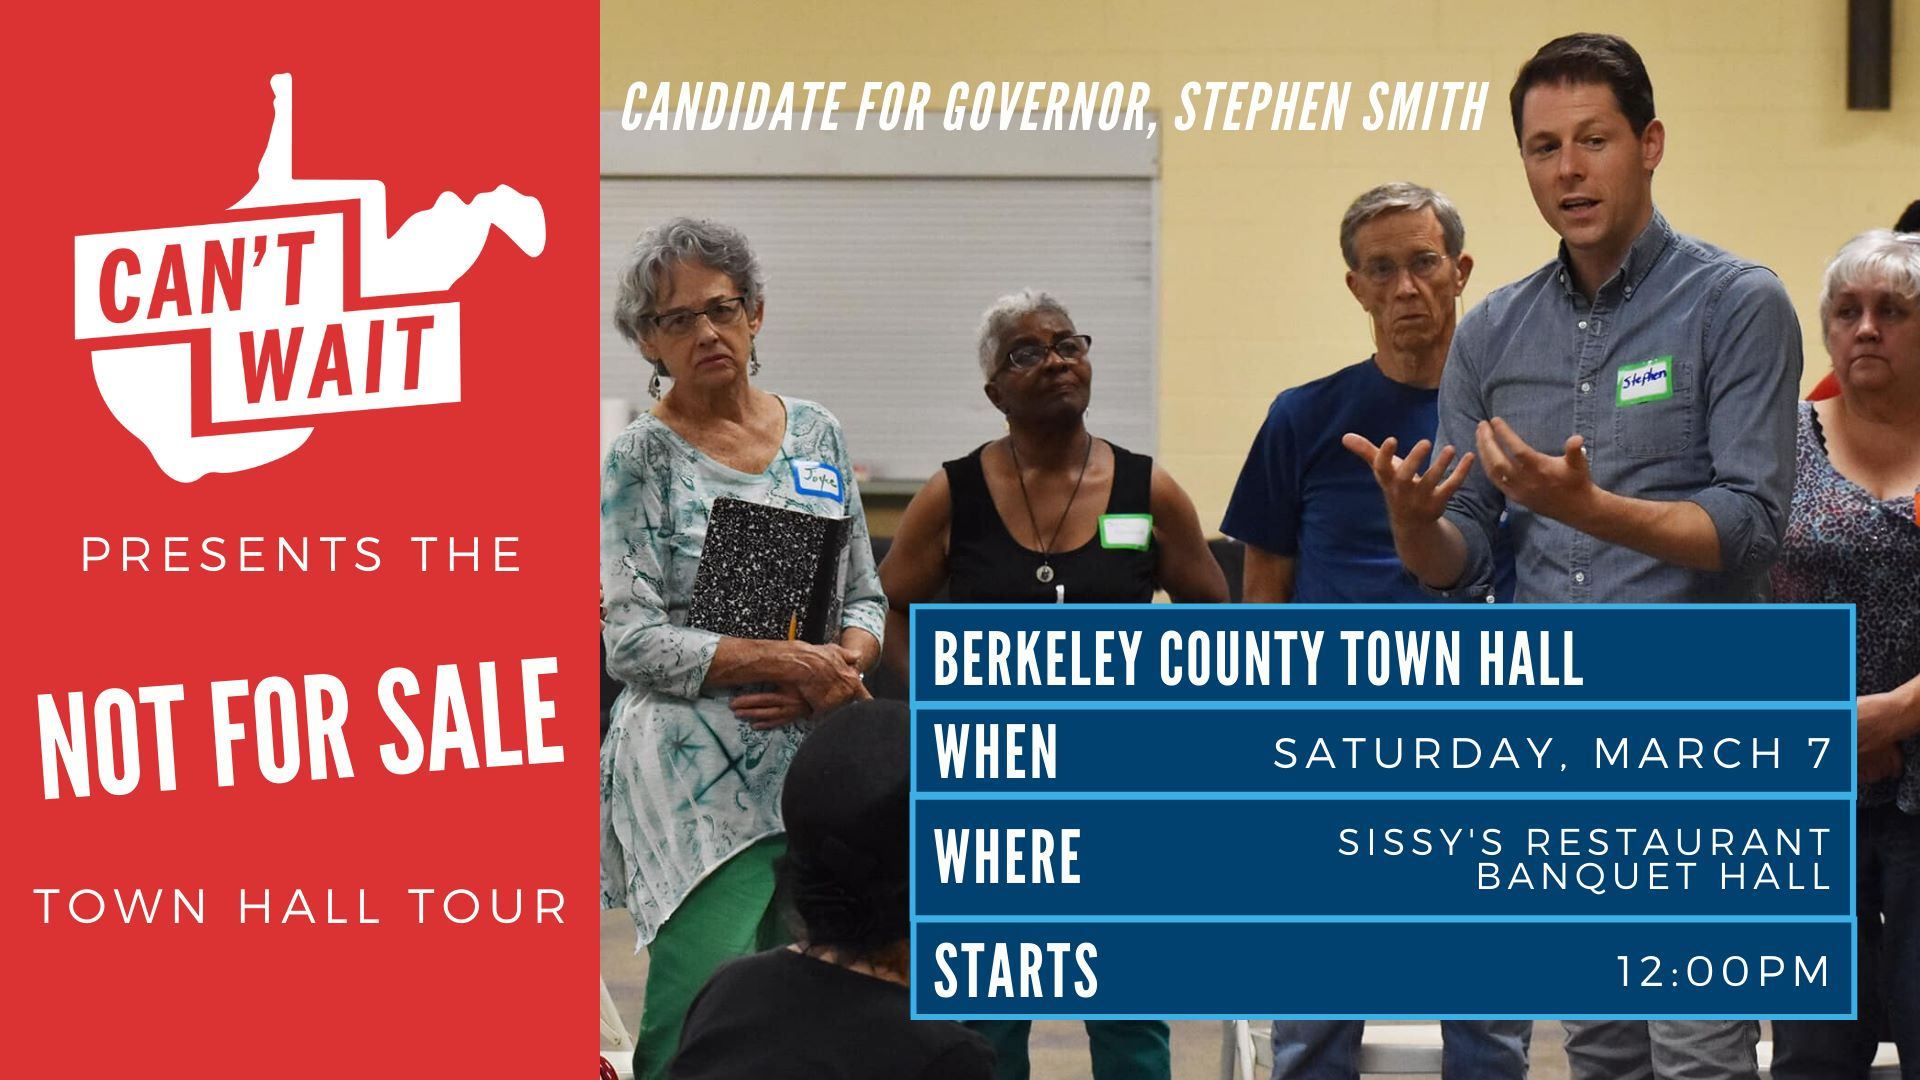 Berkeley County Town Hall graphic